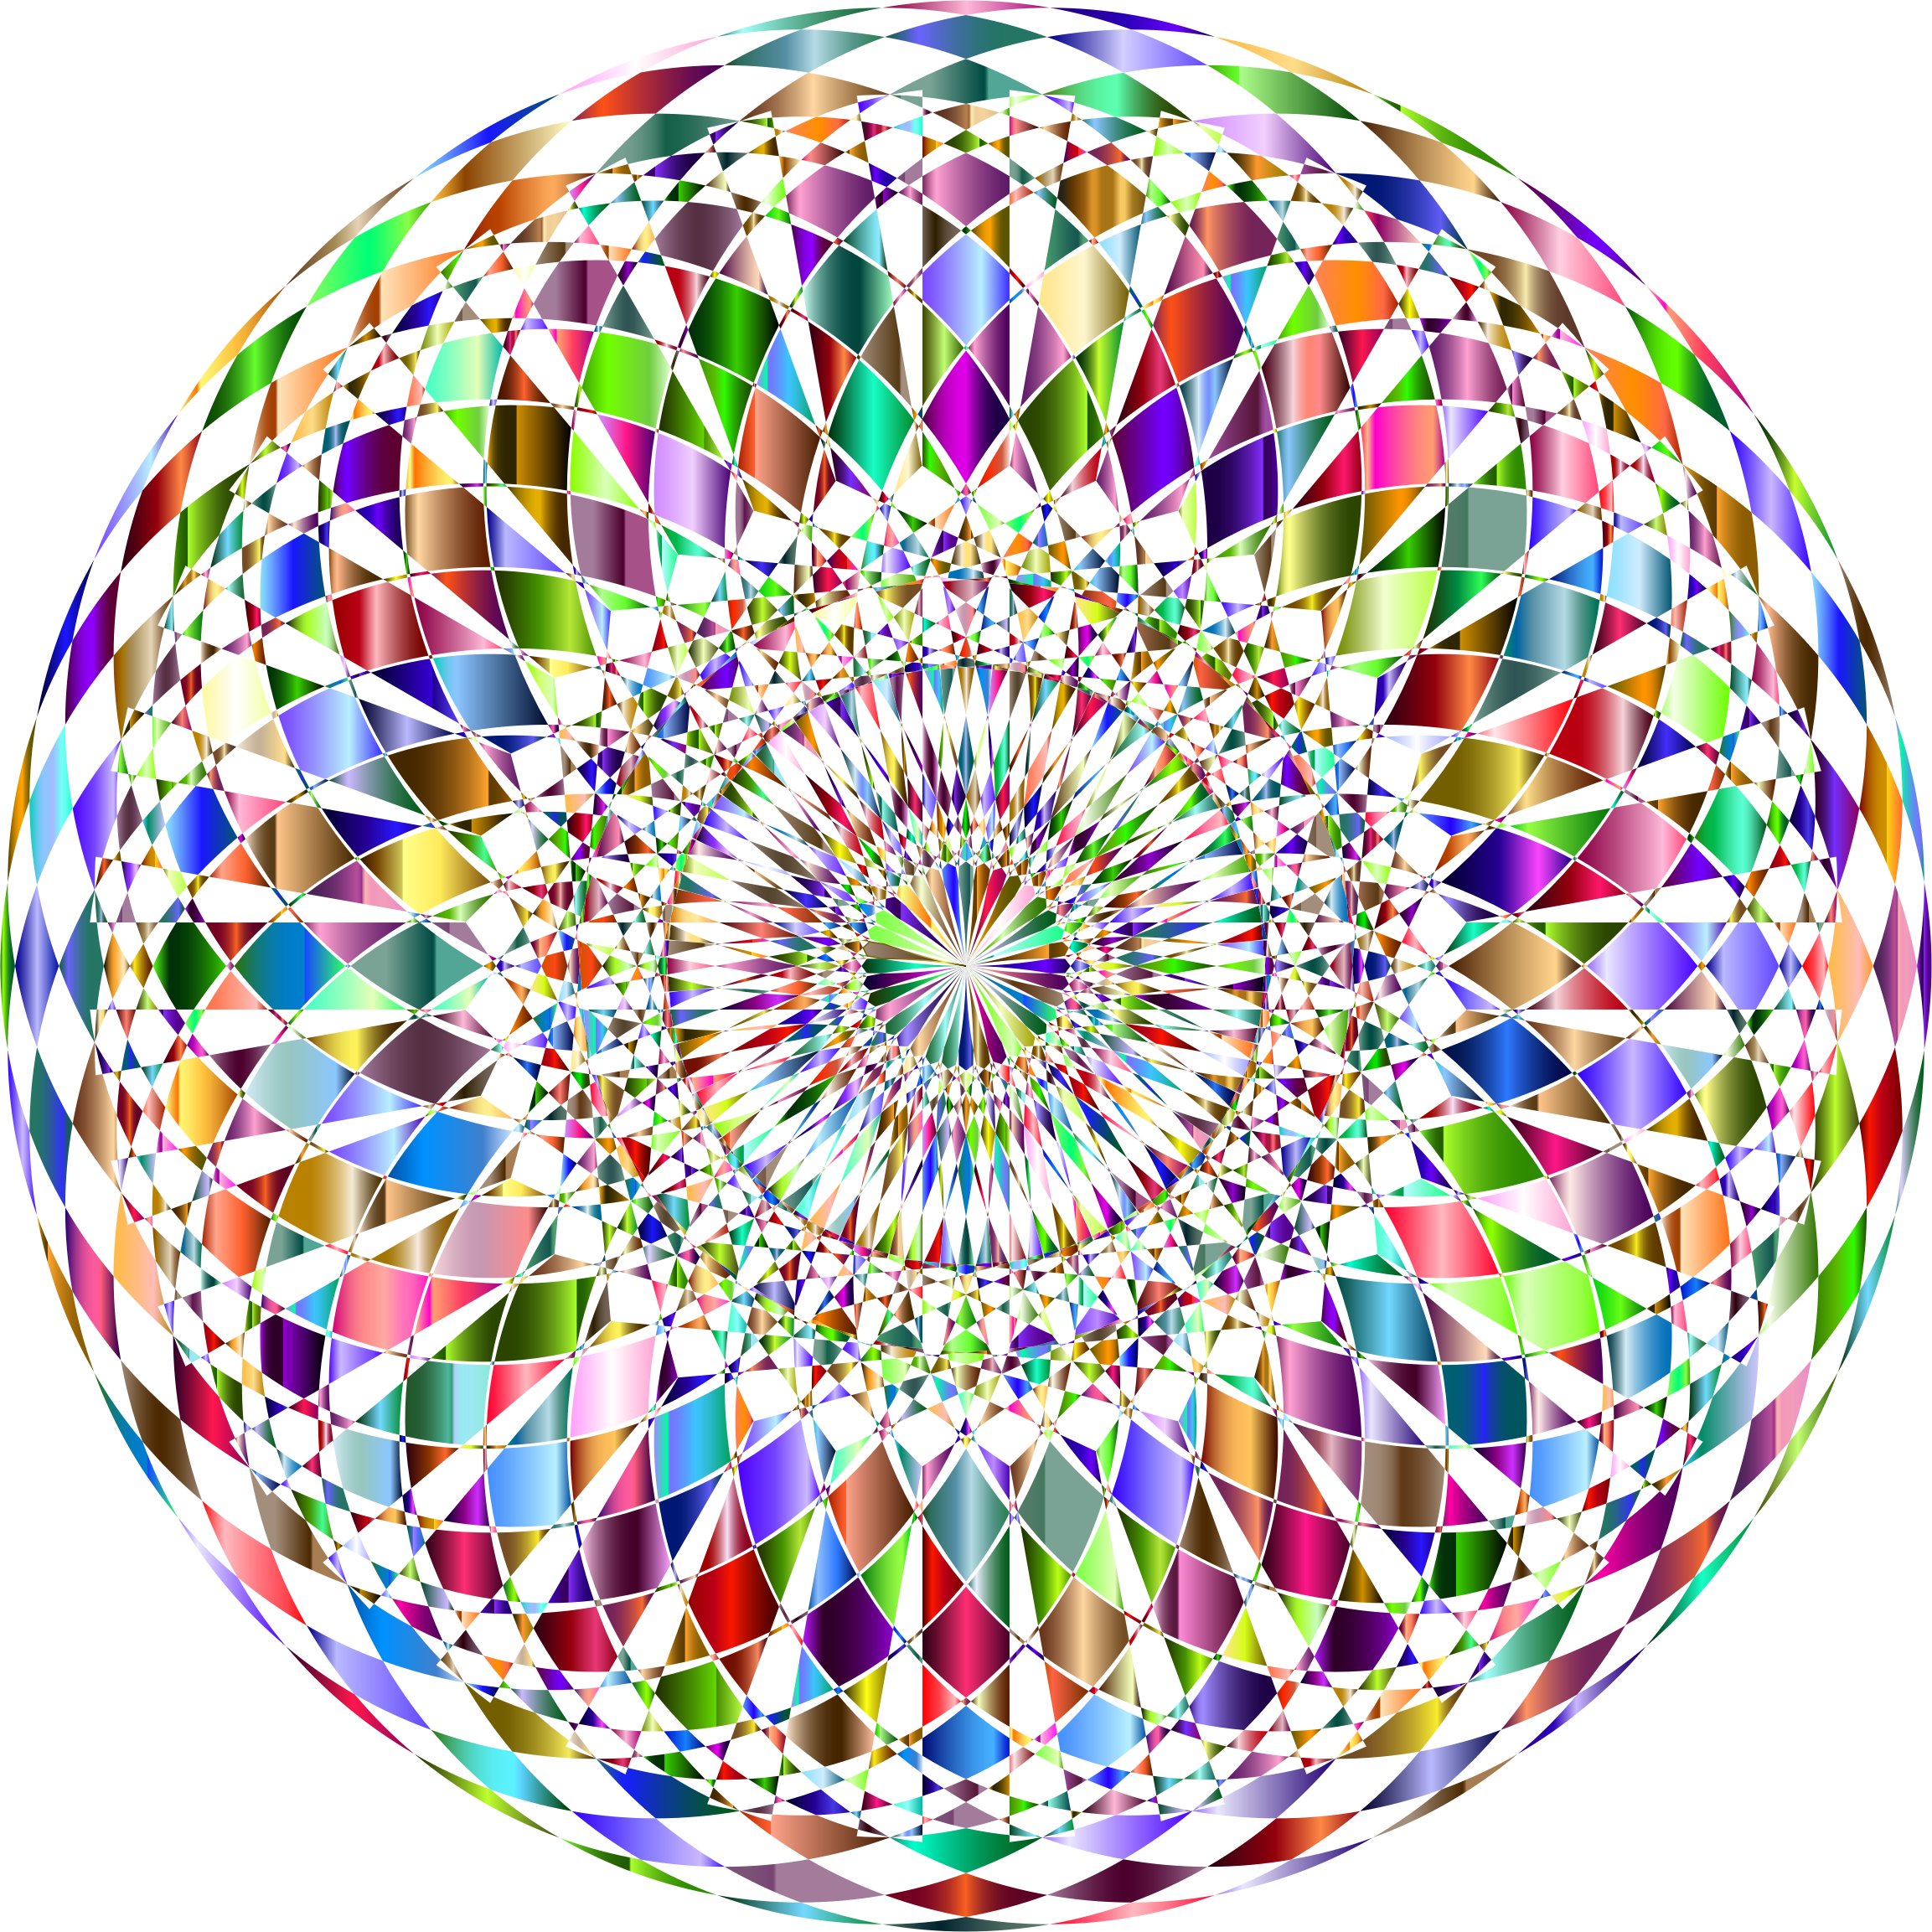 Decorative Mandala II Prismatic No Background by GDJ